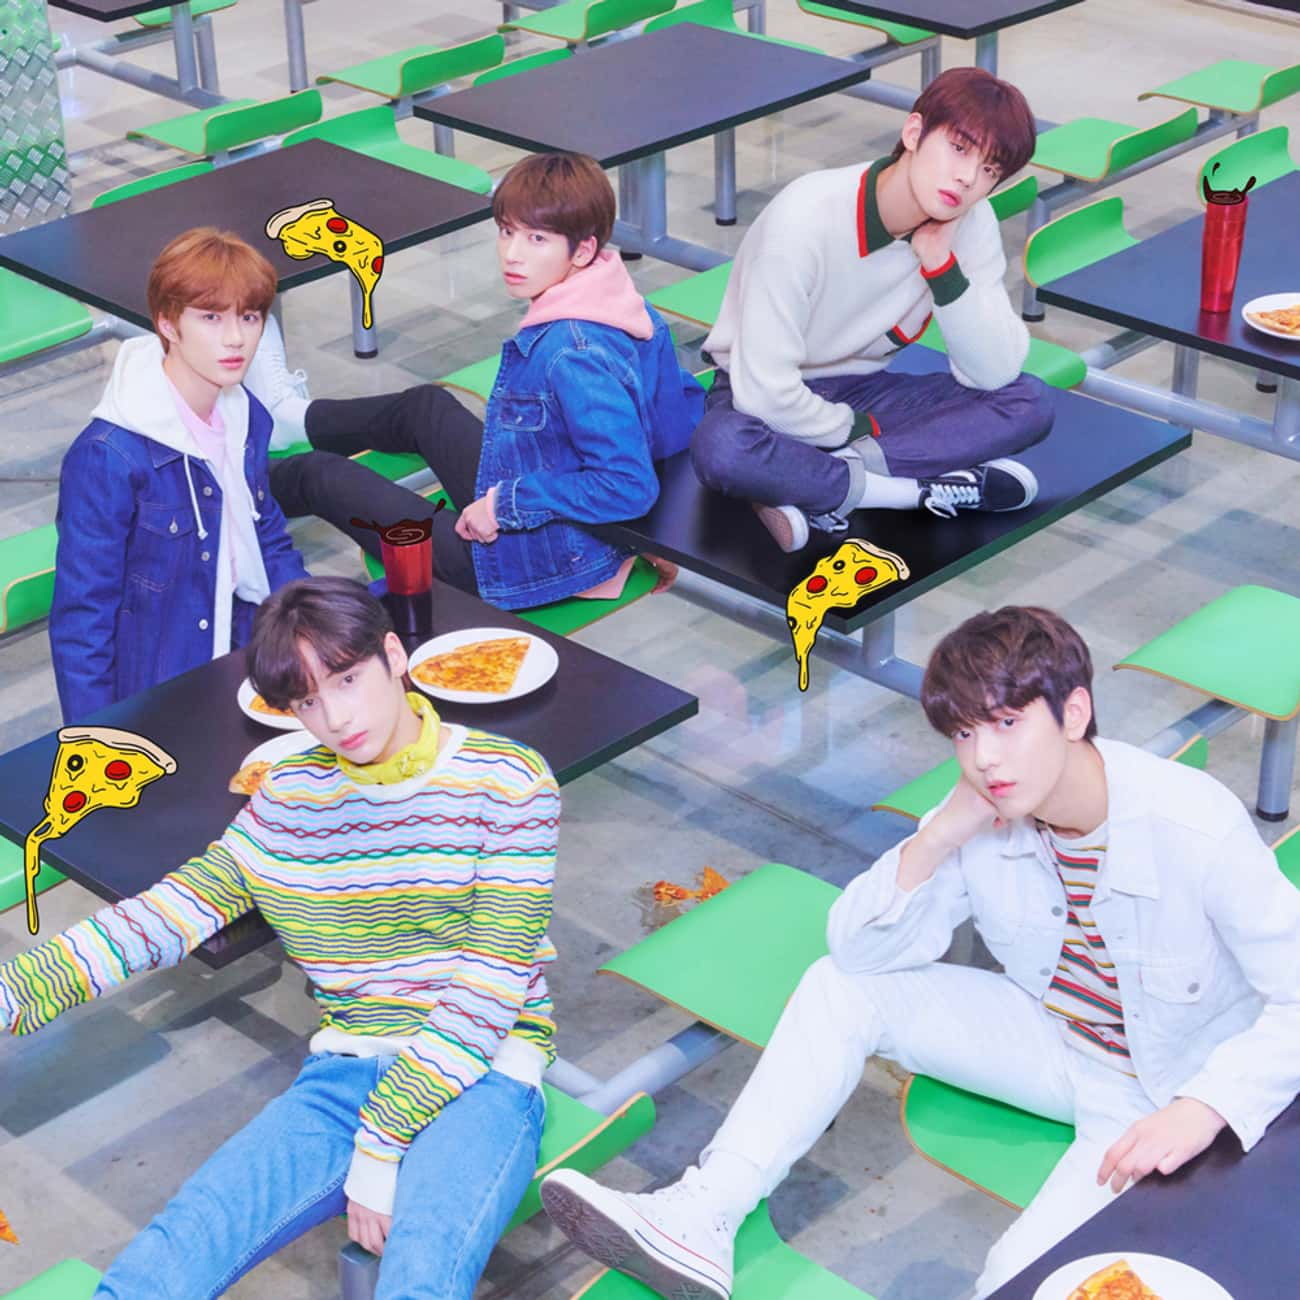 TXT is listed (or ranked) 1 on the list The Best Kpop Group Debuts Of 2019, Ranked